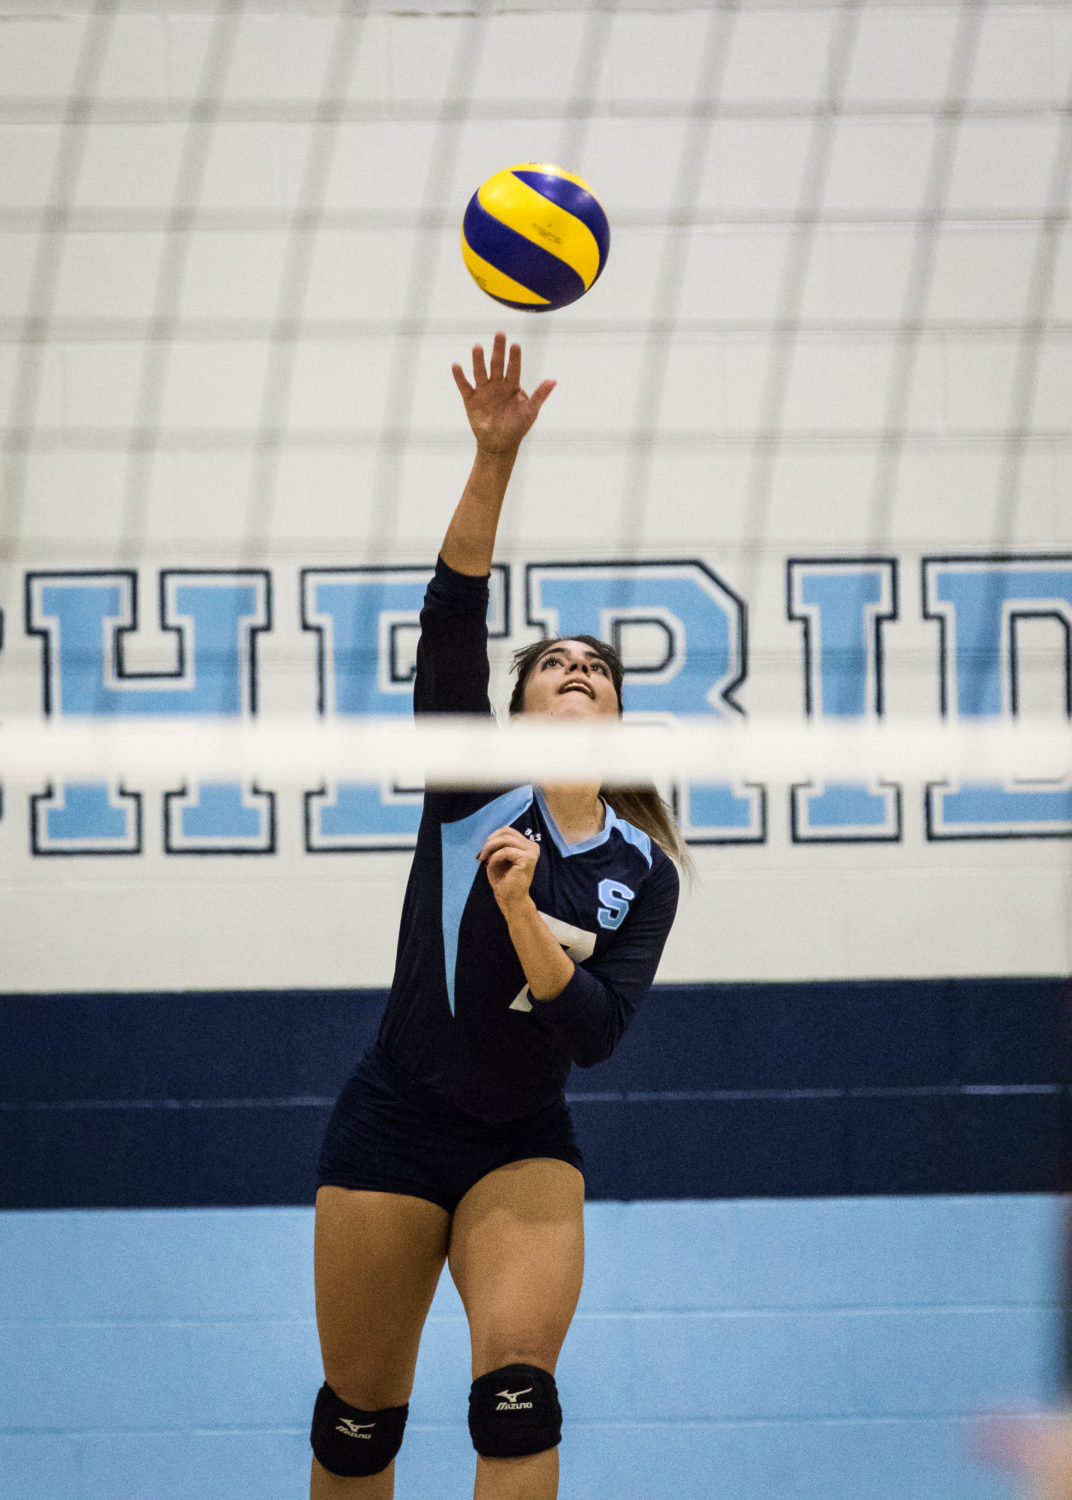 OAKVILLE, ON - Oct. 29, 2016 - A Sheridan player prepares to volley the ball.